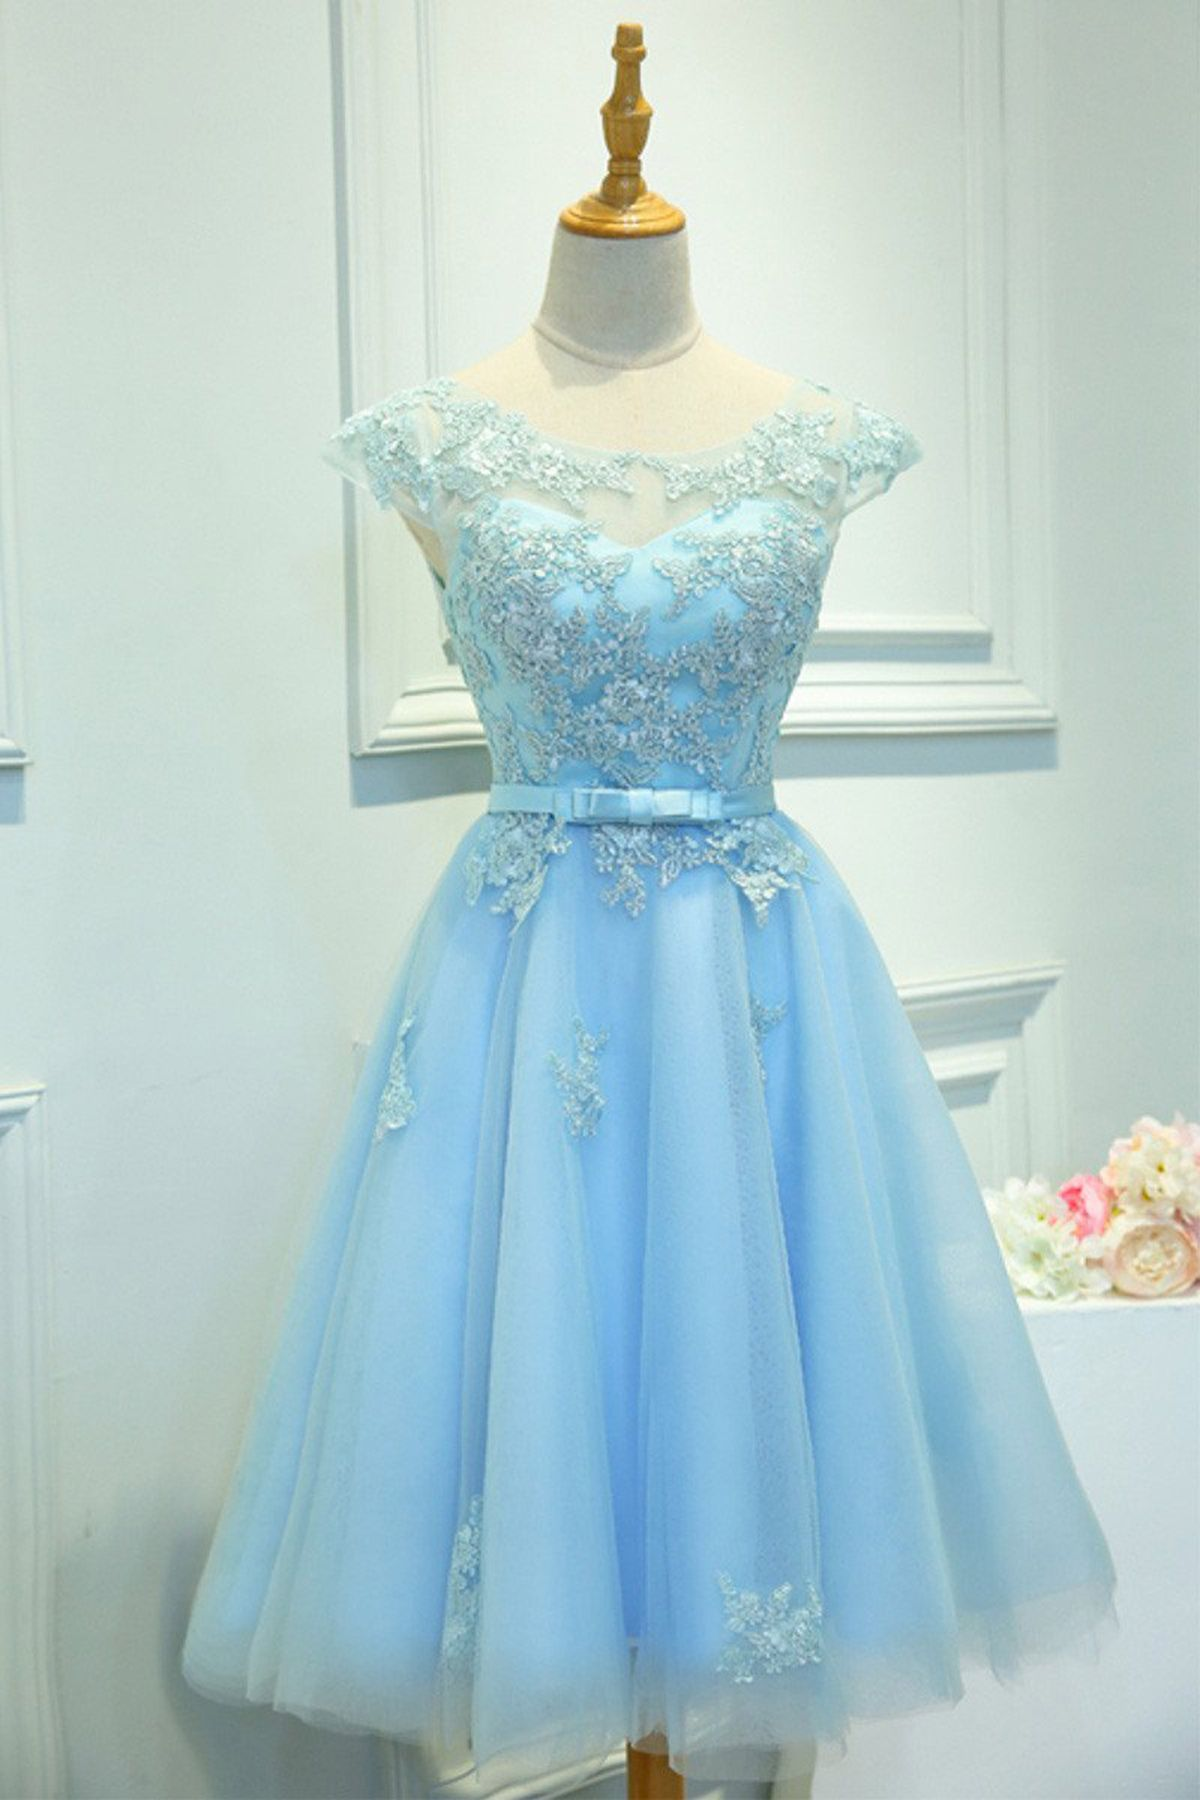 Cute ice blue lace short prom dress with bow short homecoming dress